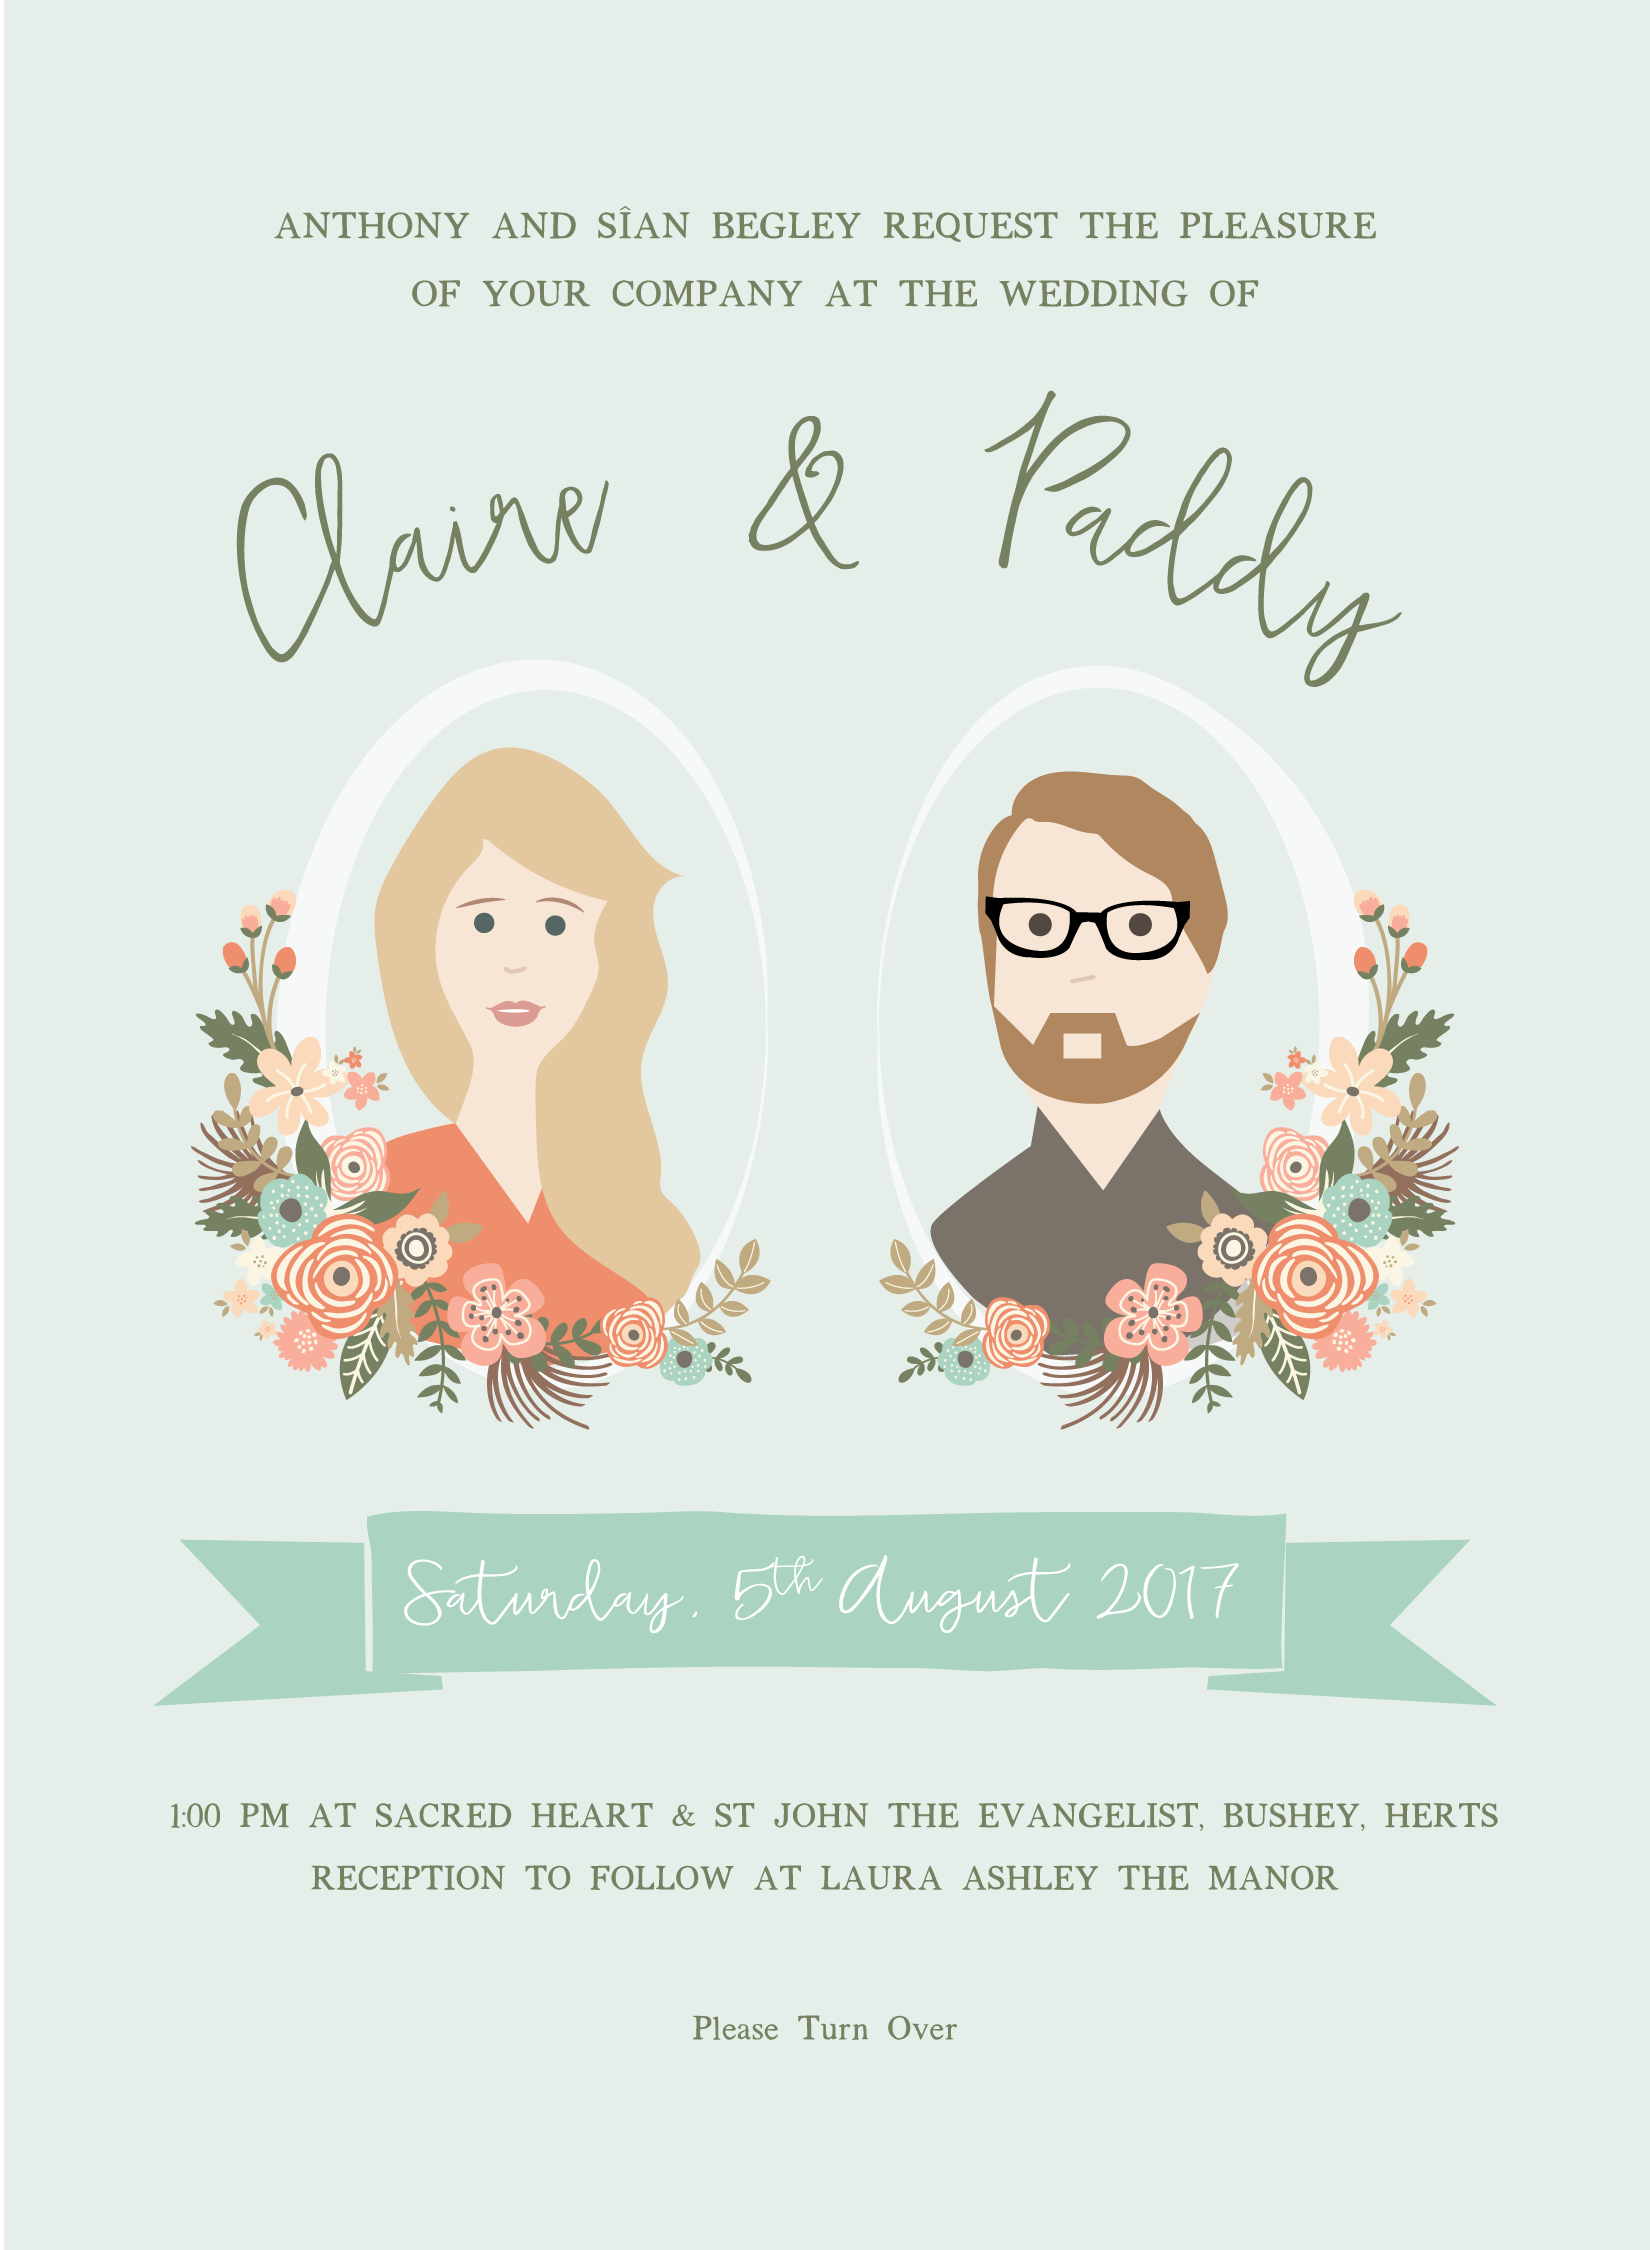 Wedding Invitation Design: Claire & Paddy